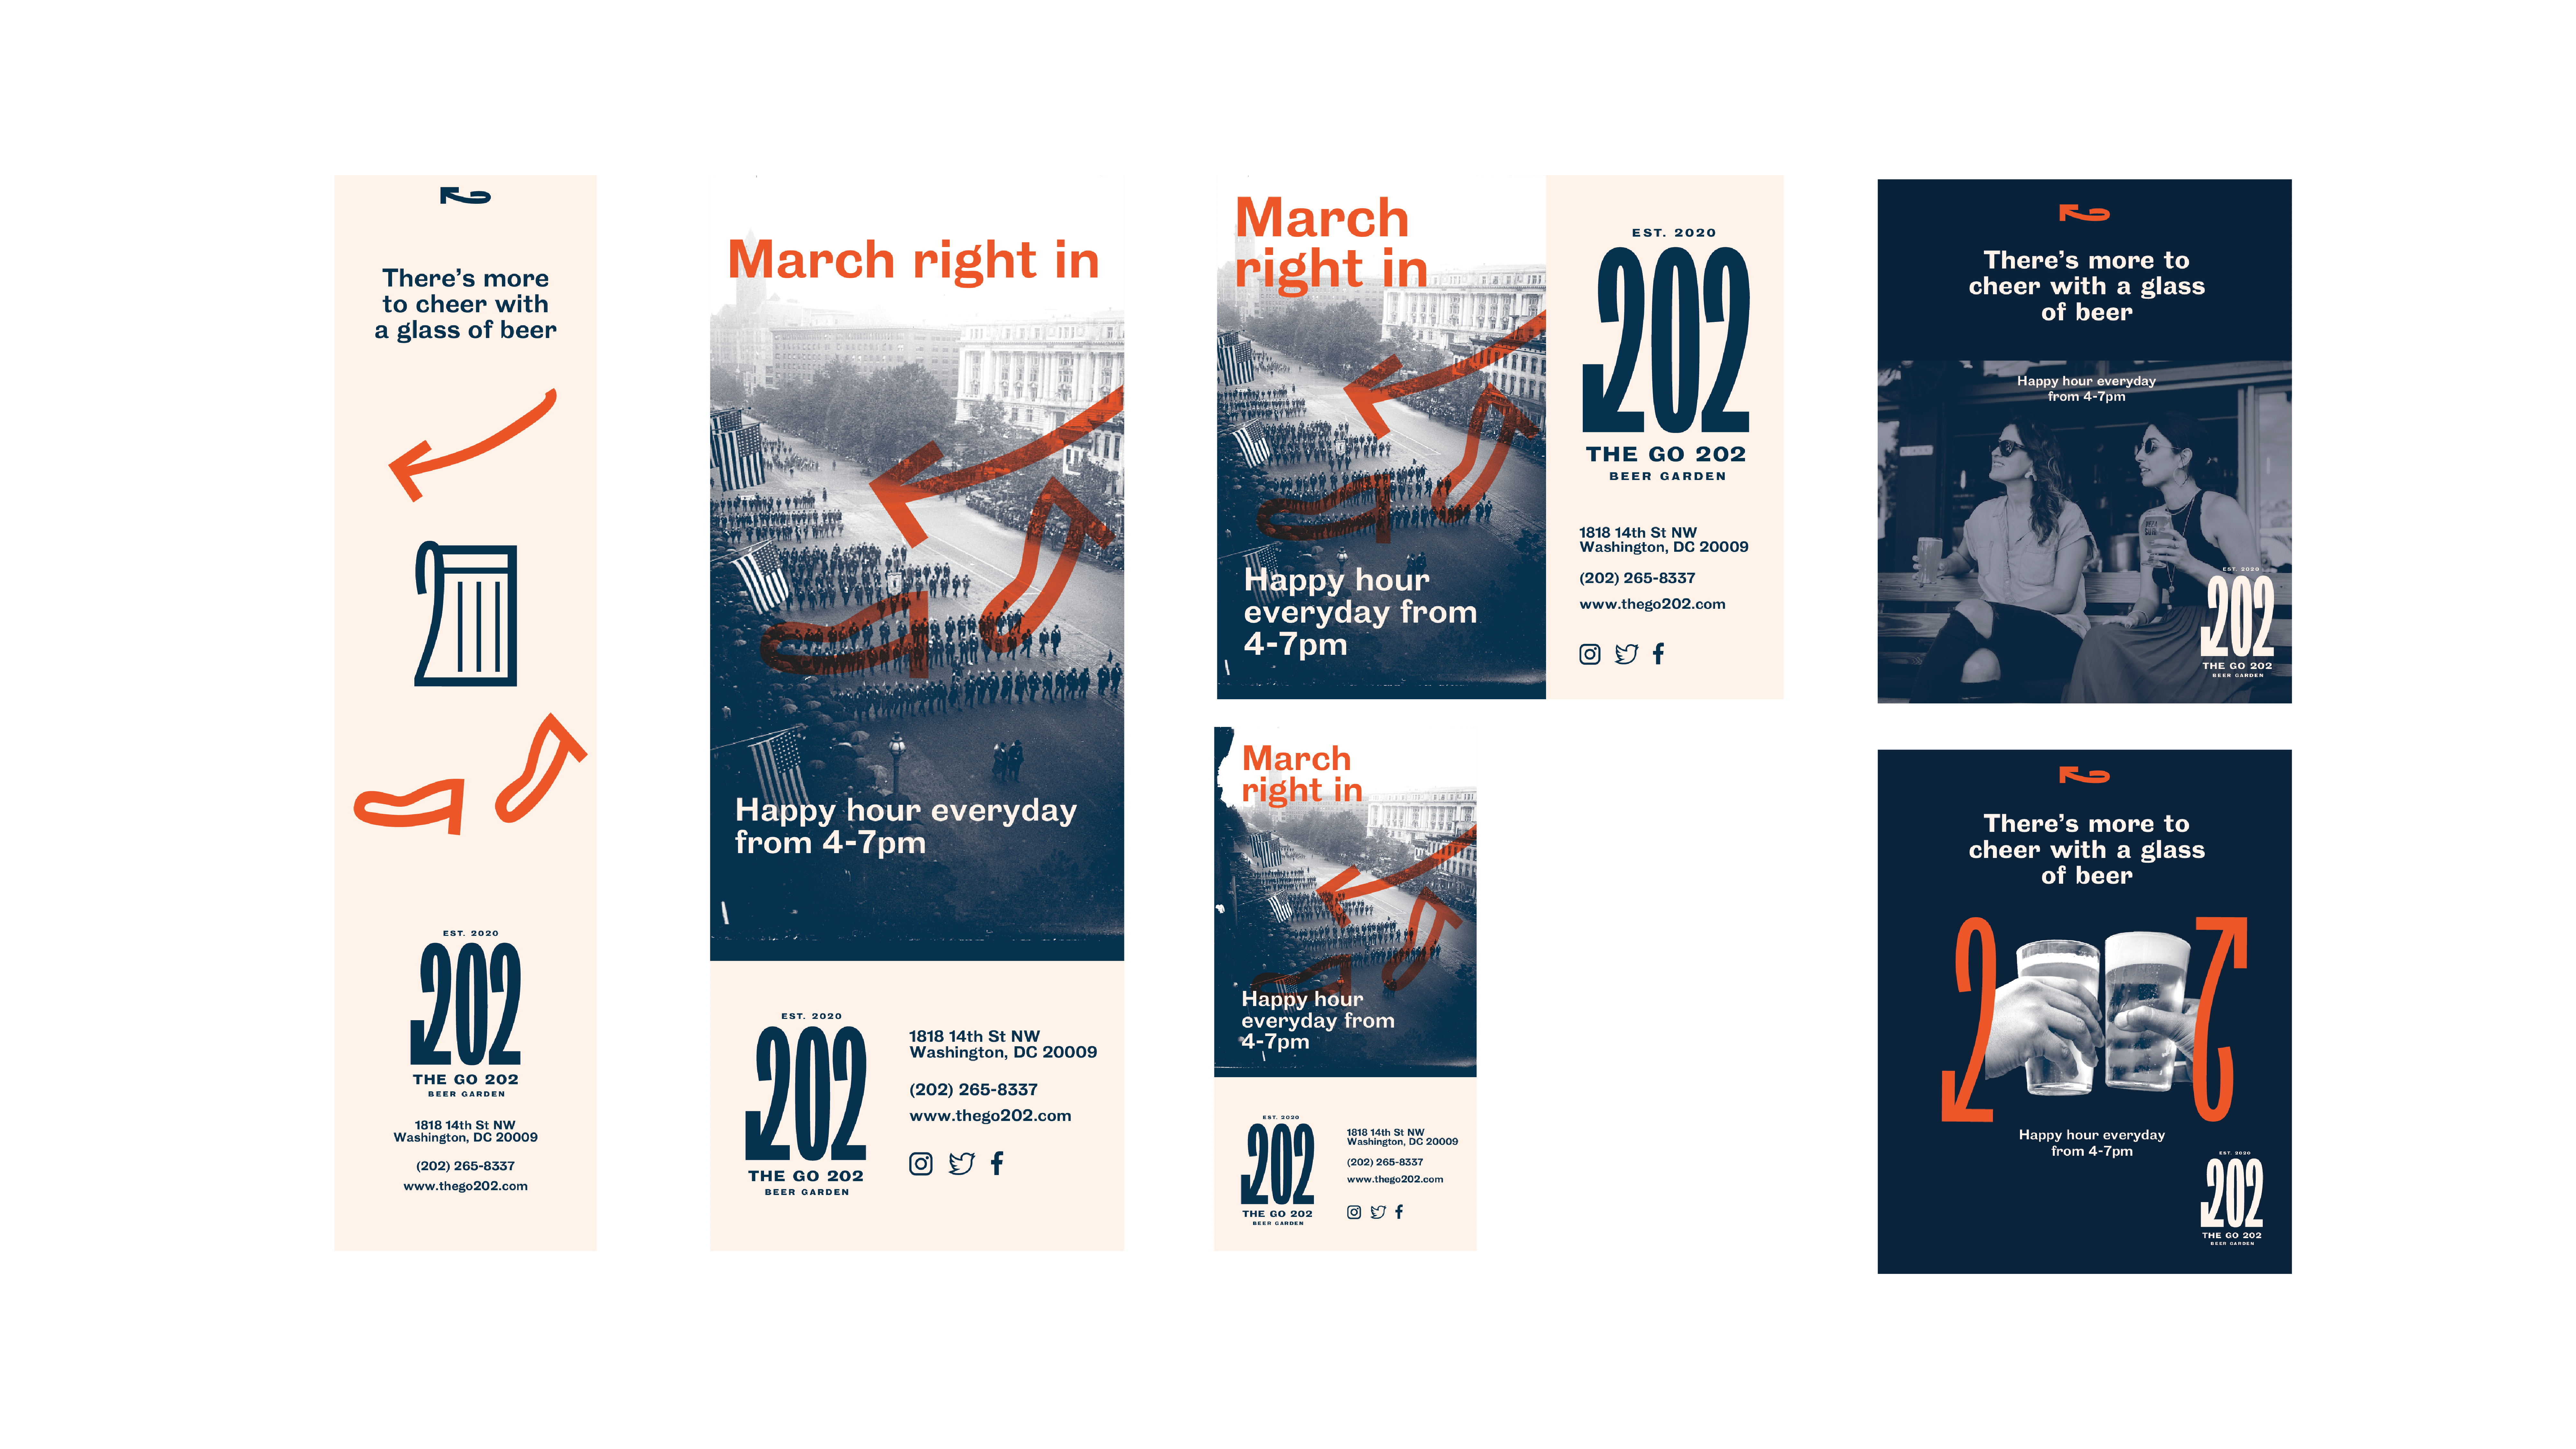 Varying formats and sizing advertising for The Go 202 in print